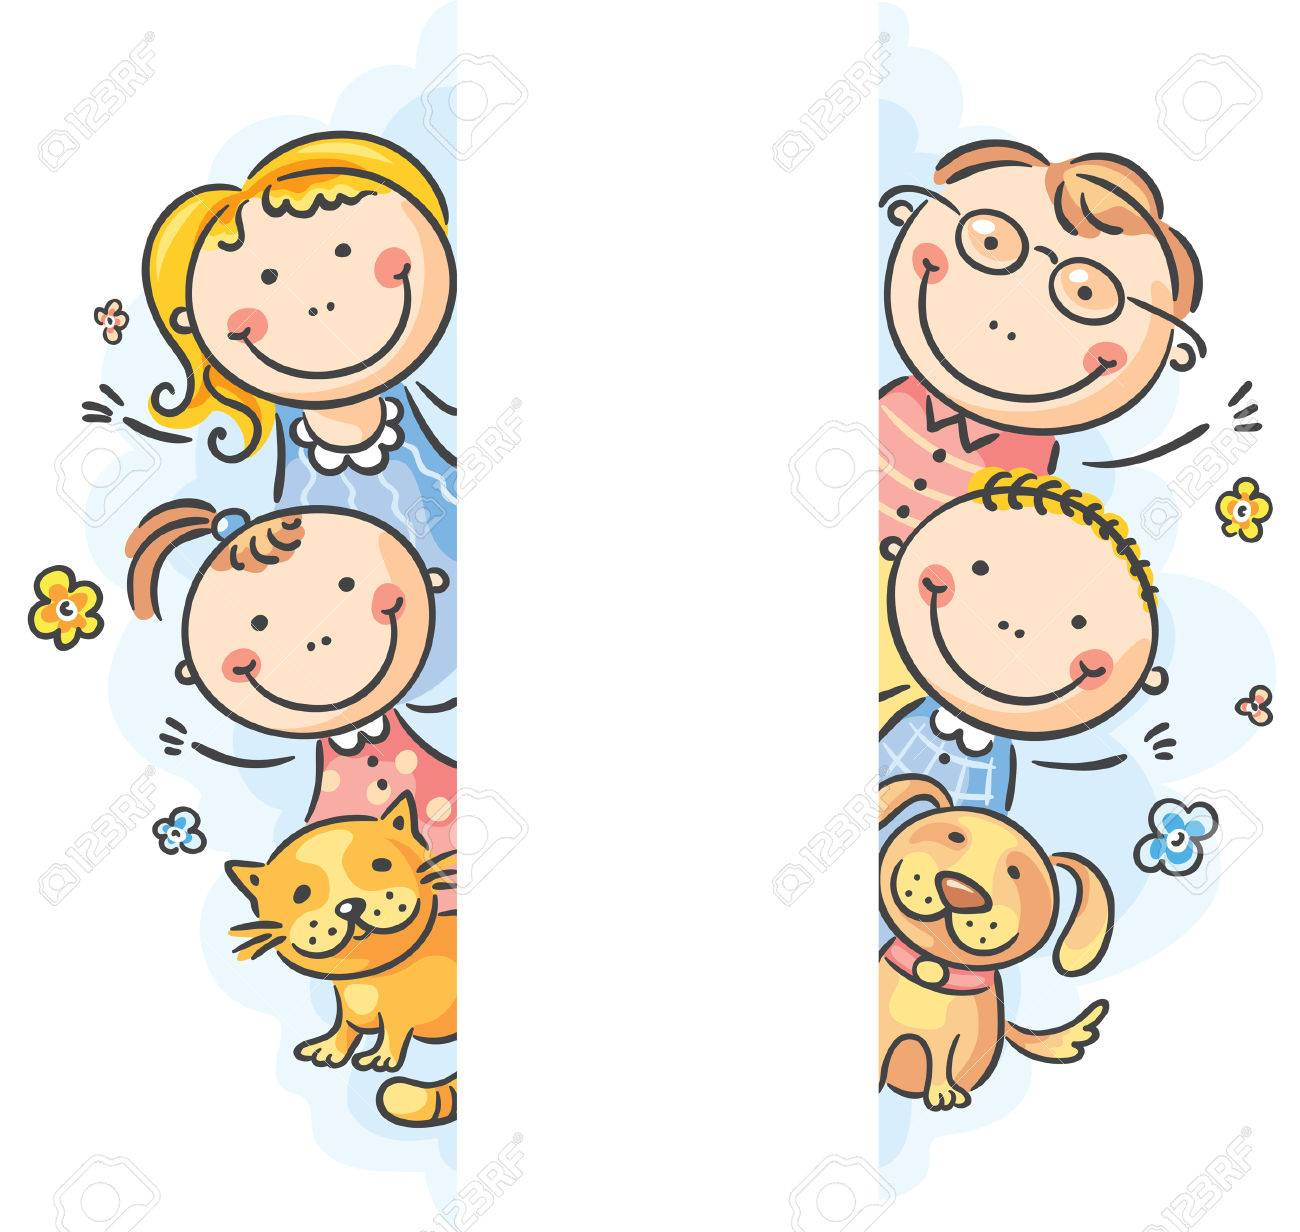 Family Frame Borders With A Copy Space Stock Vector